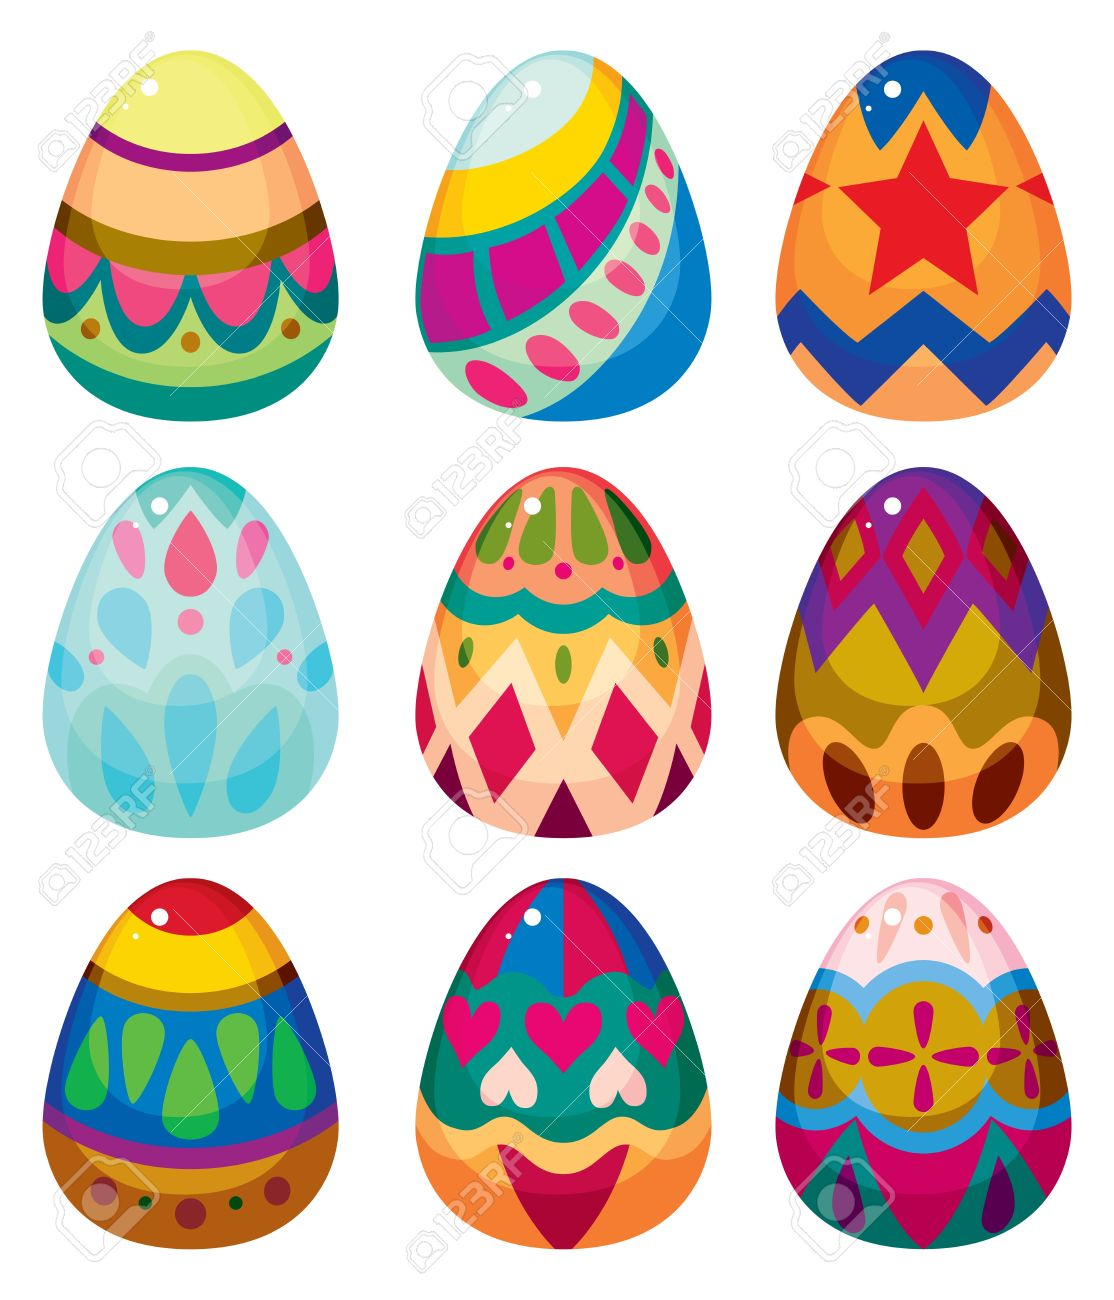 cartoon easter egg icon royalty free cliparts vectors and stock